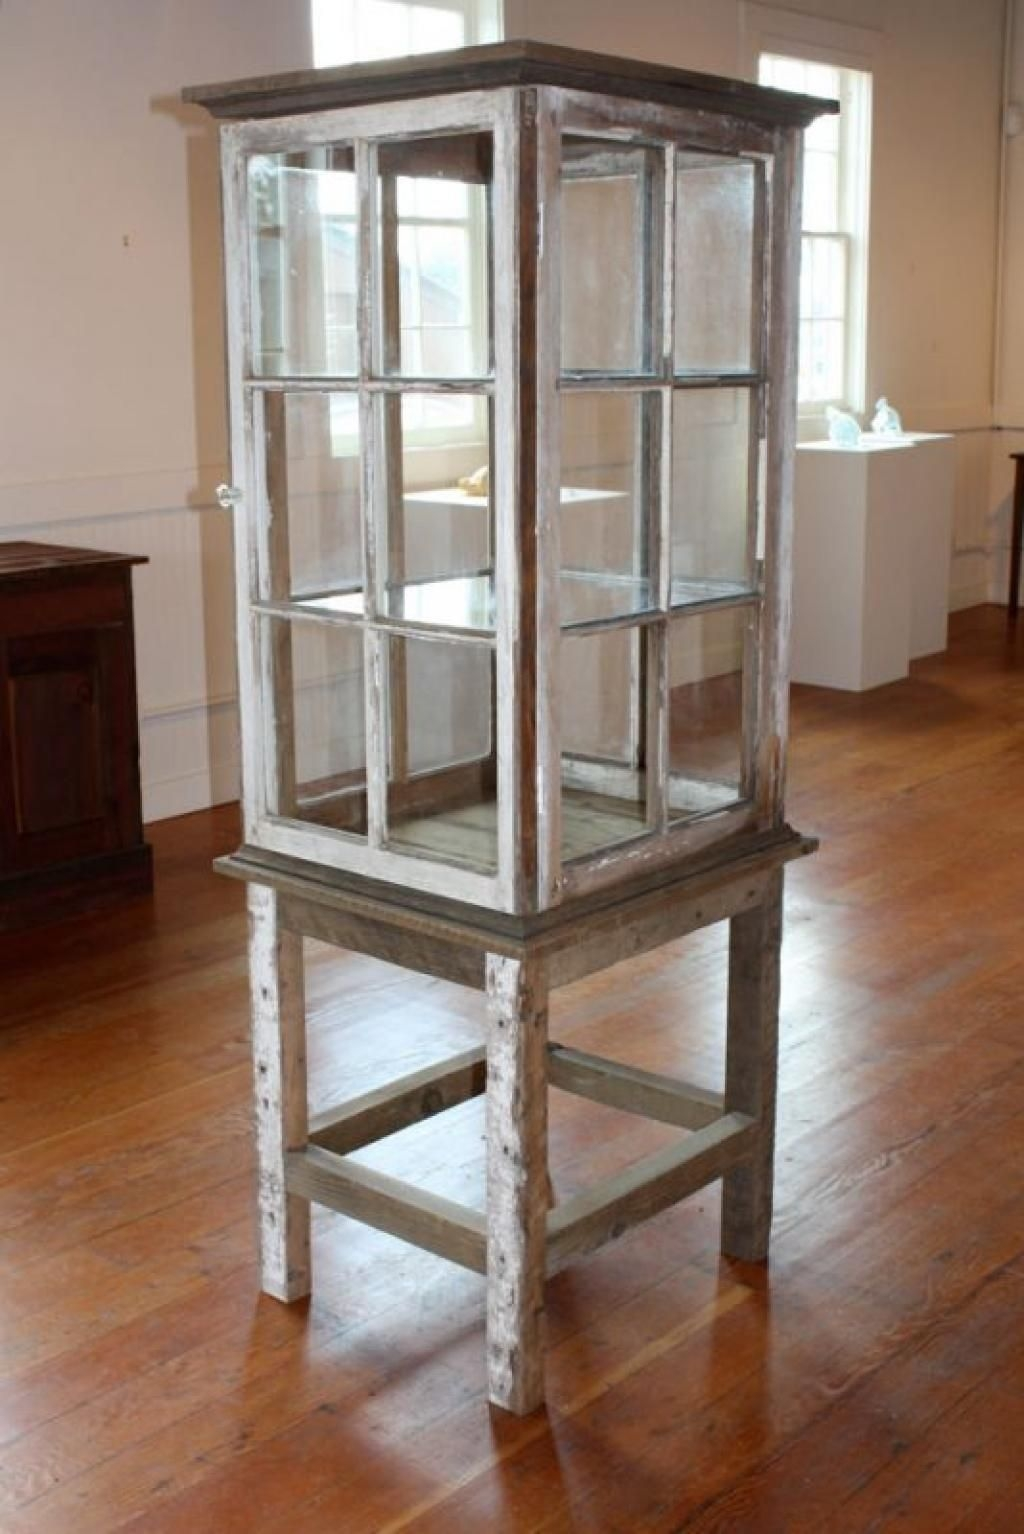 Recycled window display cabinet & Small Display Cabinets - Foter